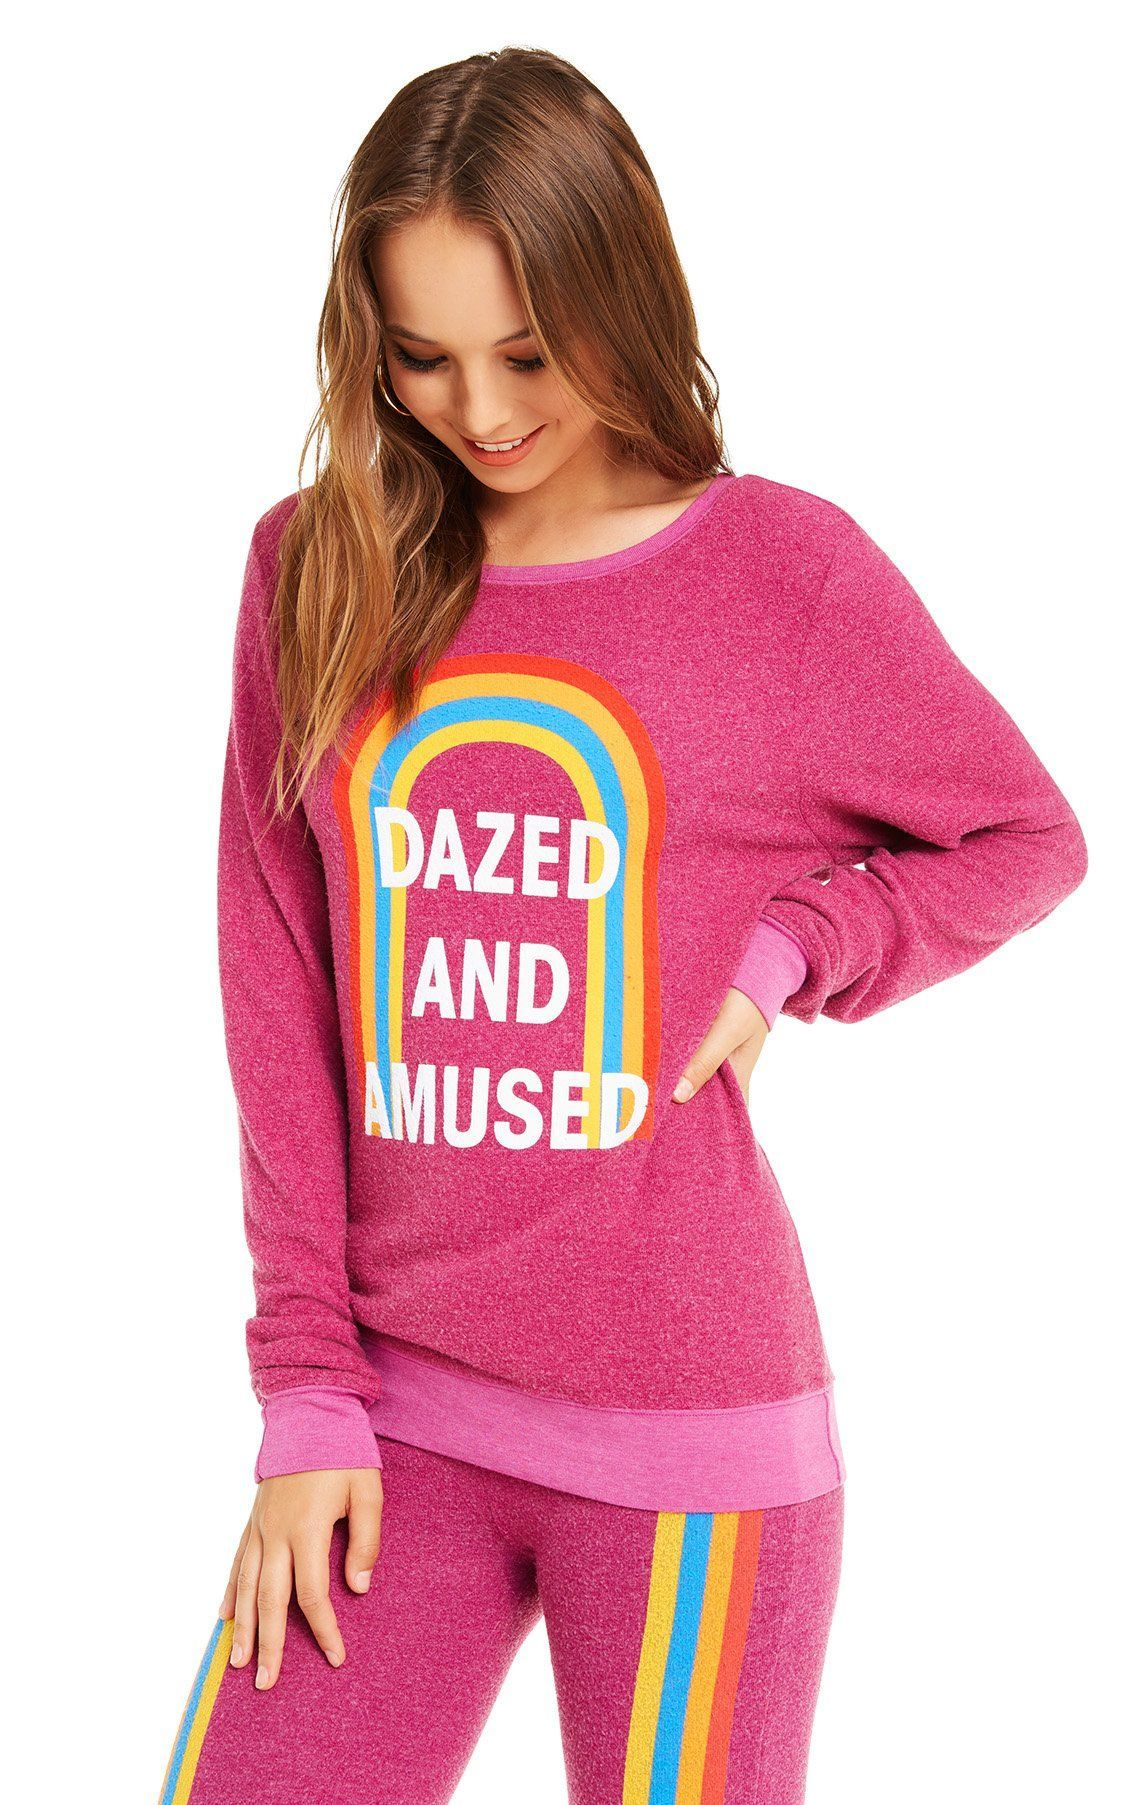 b62b05405 Dazed and Amused Baggy Beach Jumper in 2019 | Brands We Love | Baggy ...